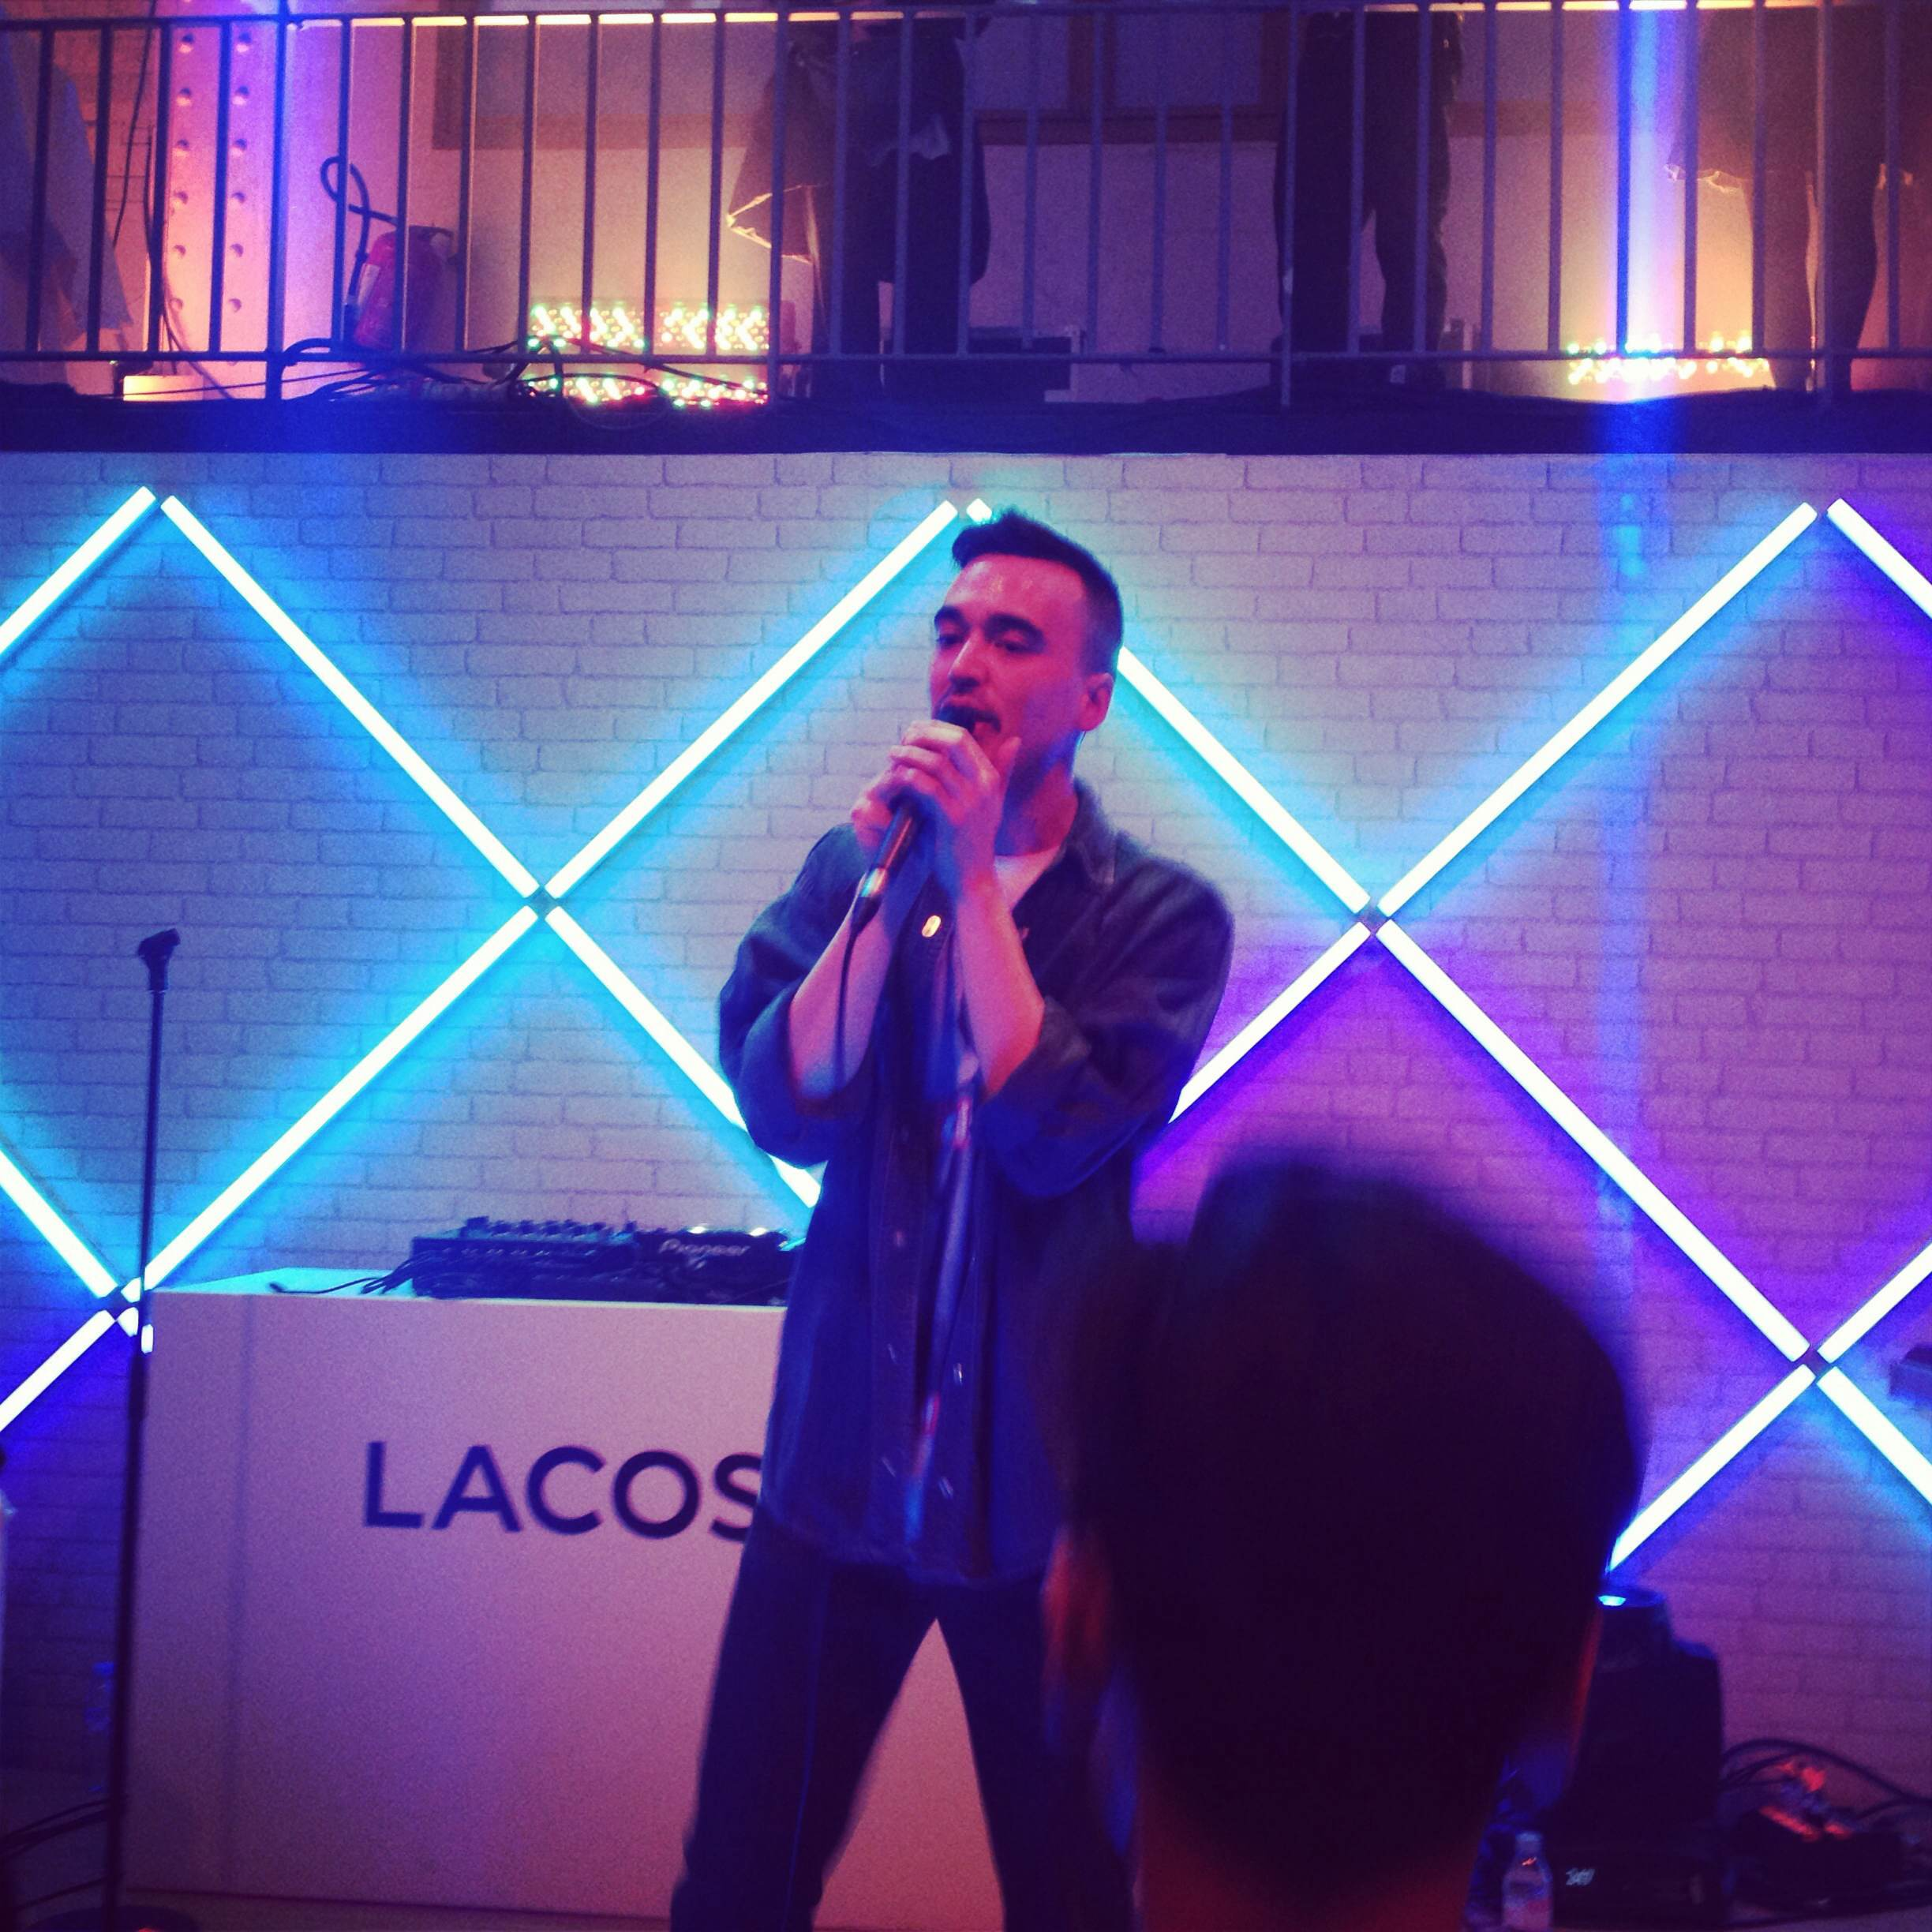 LACOSTE BEAUTIFUL PARTY - THE AIKIU (Live) - MTRLST.COM